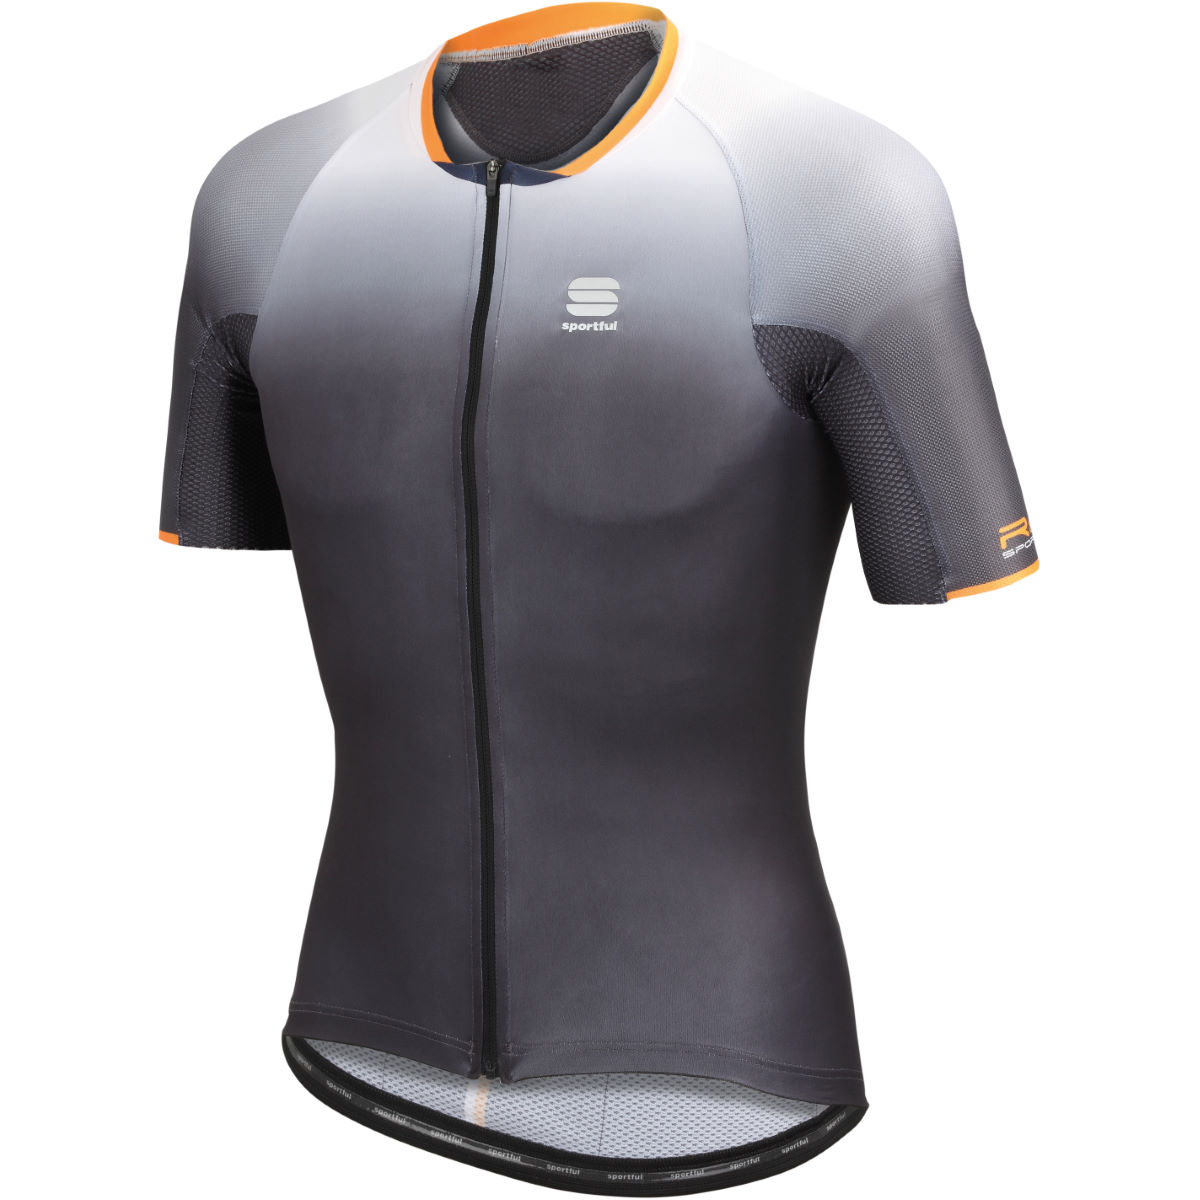 Maillot Sportful R & D Speed Skin - XXXL Anthracite Maillots vélo à manches courtes